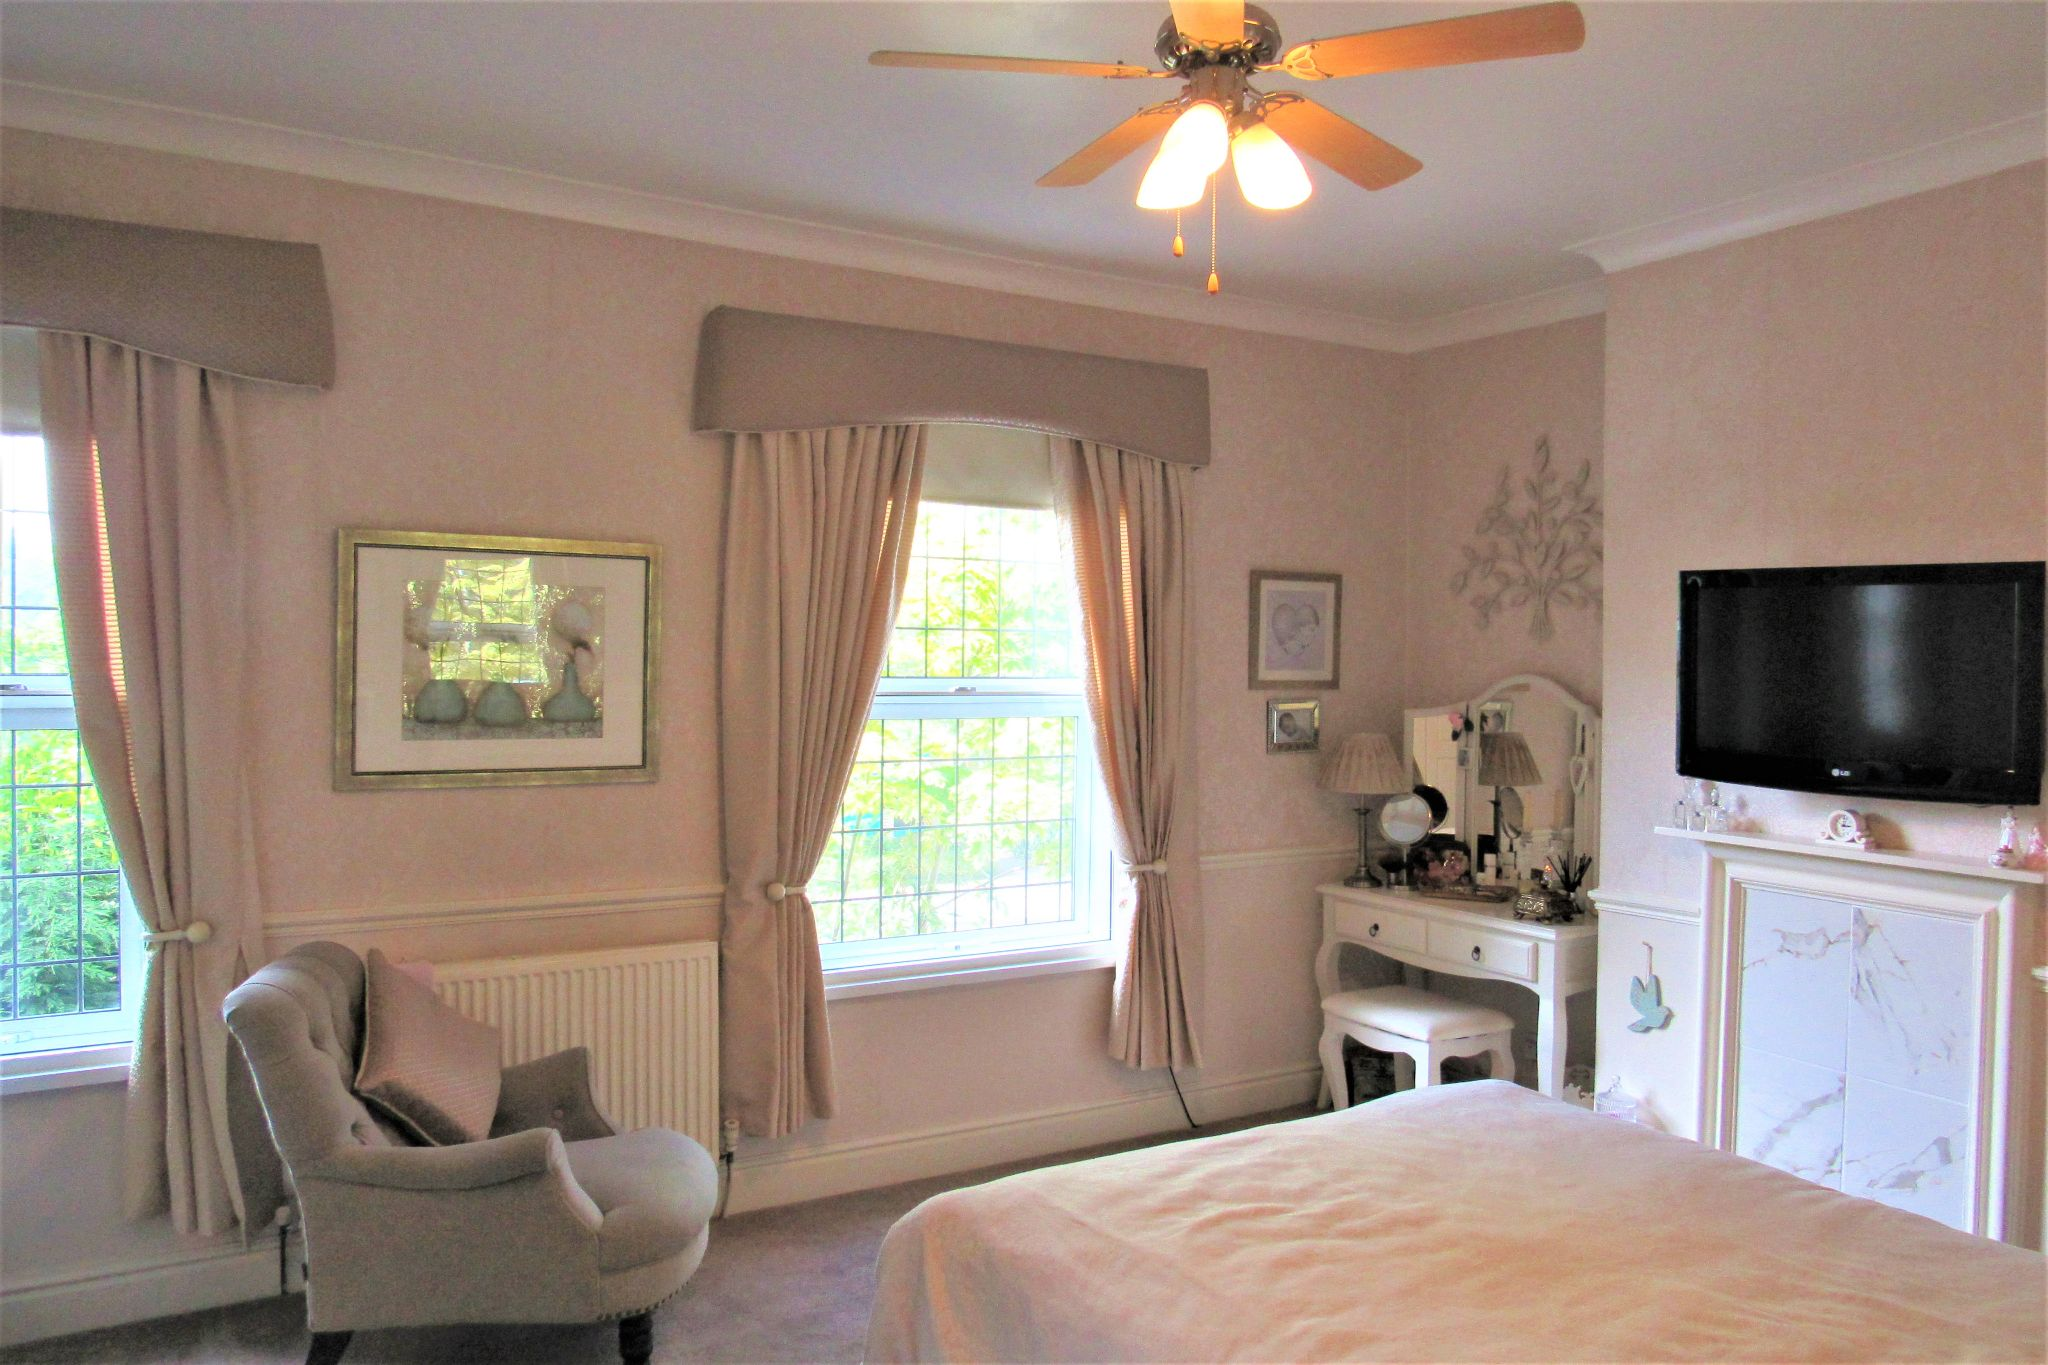 3 bedroom mid terraced house SSTC in Stockport - Photograph 24.